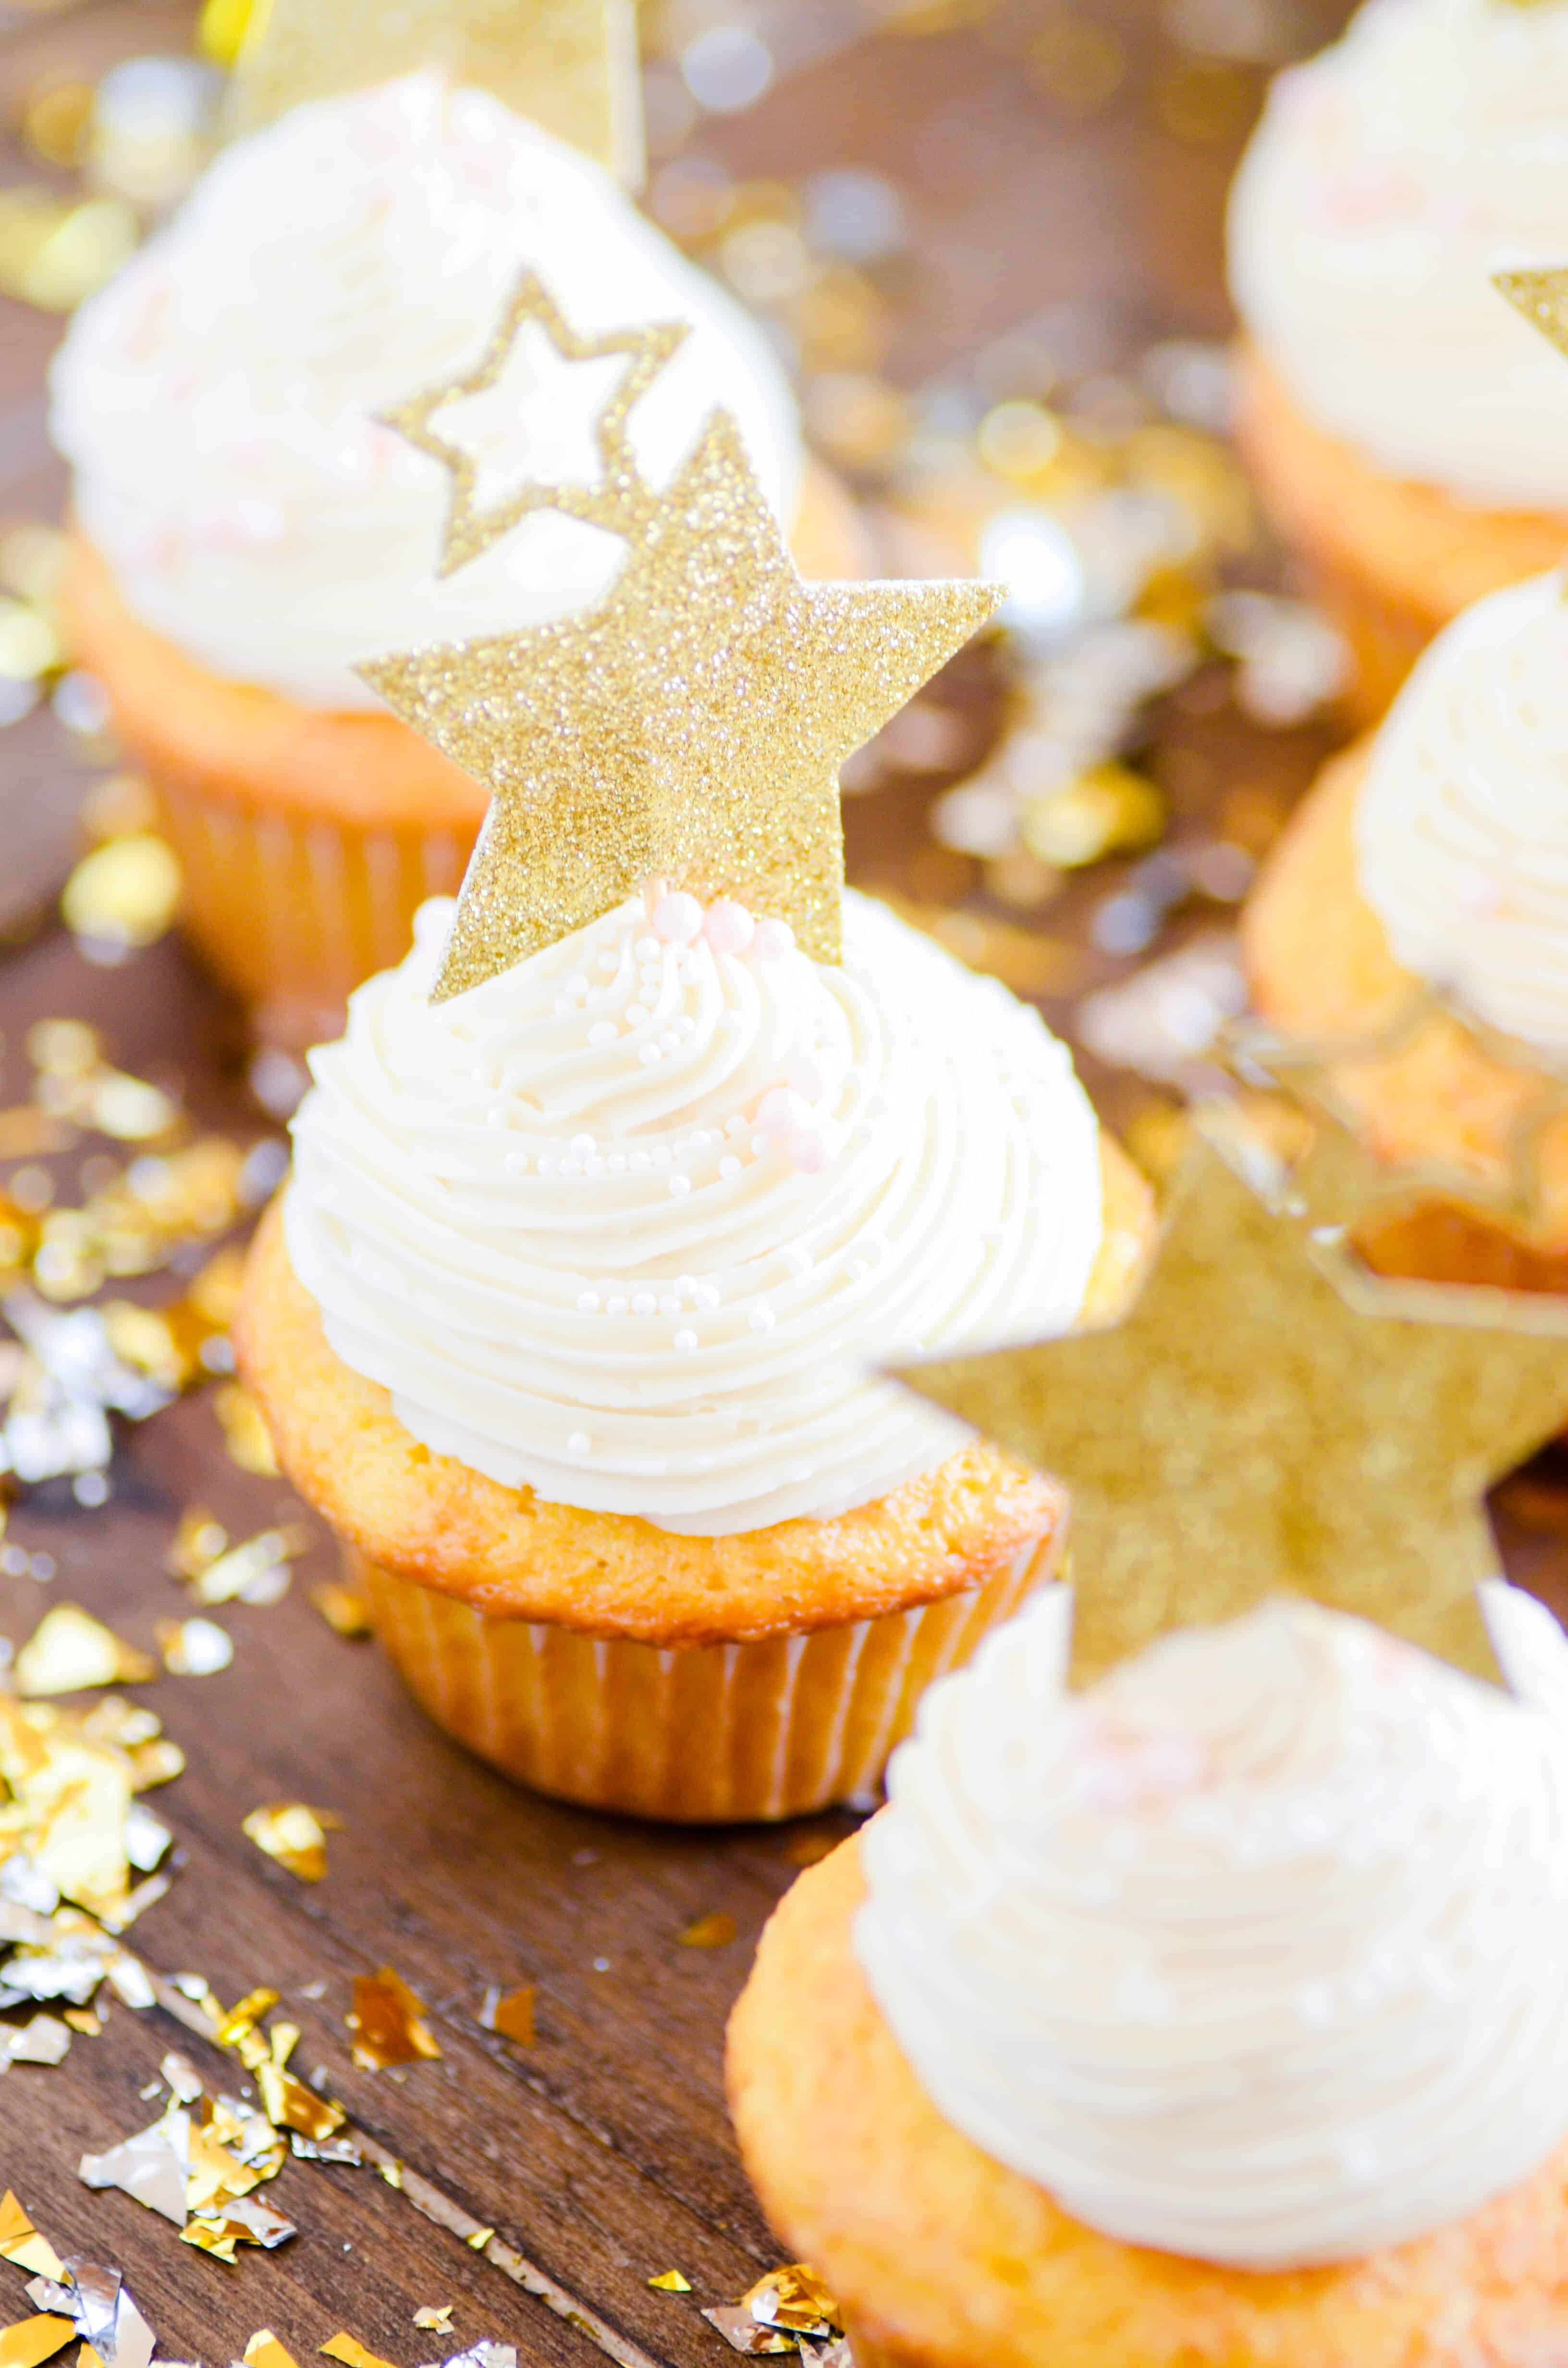 Here are three super easy non-alcoholic NYE treats and drinks that you can pull off at the last minute for the entire family to enjoy.